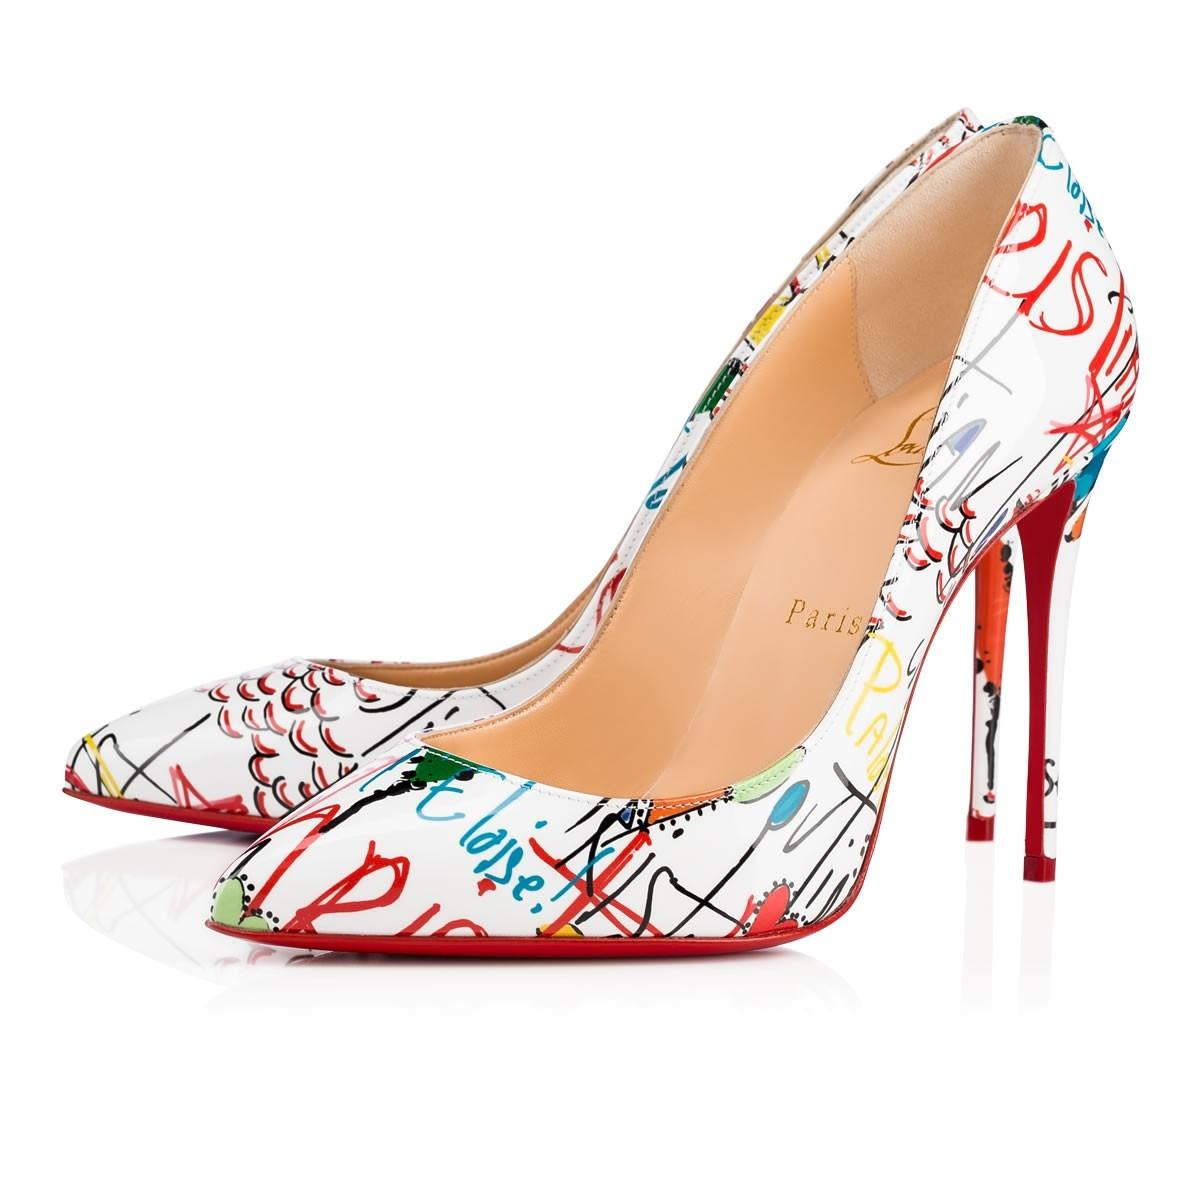 sale retailer 5debe 1cd18 where to buy christian louboutin pigalle follies pump ...